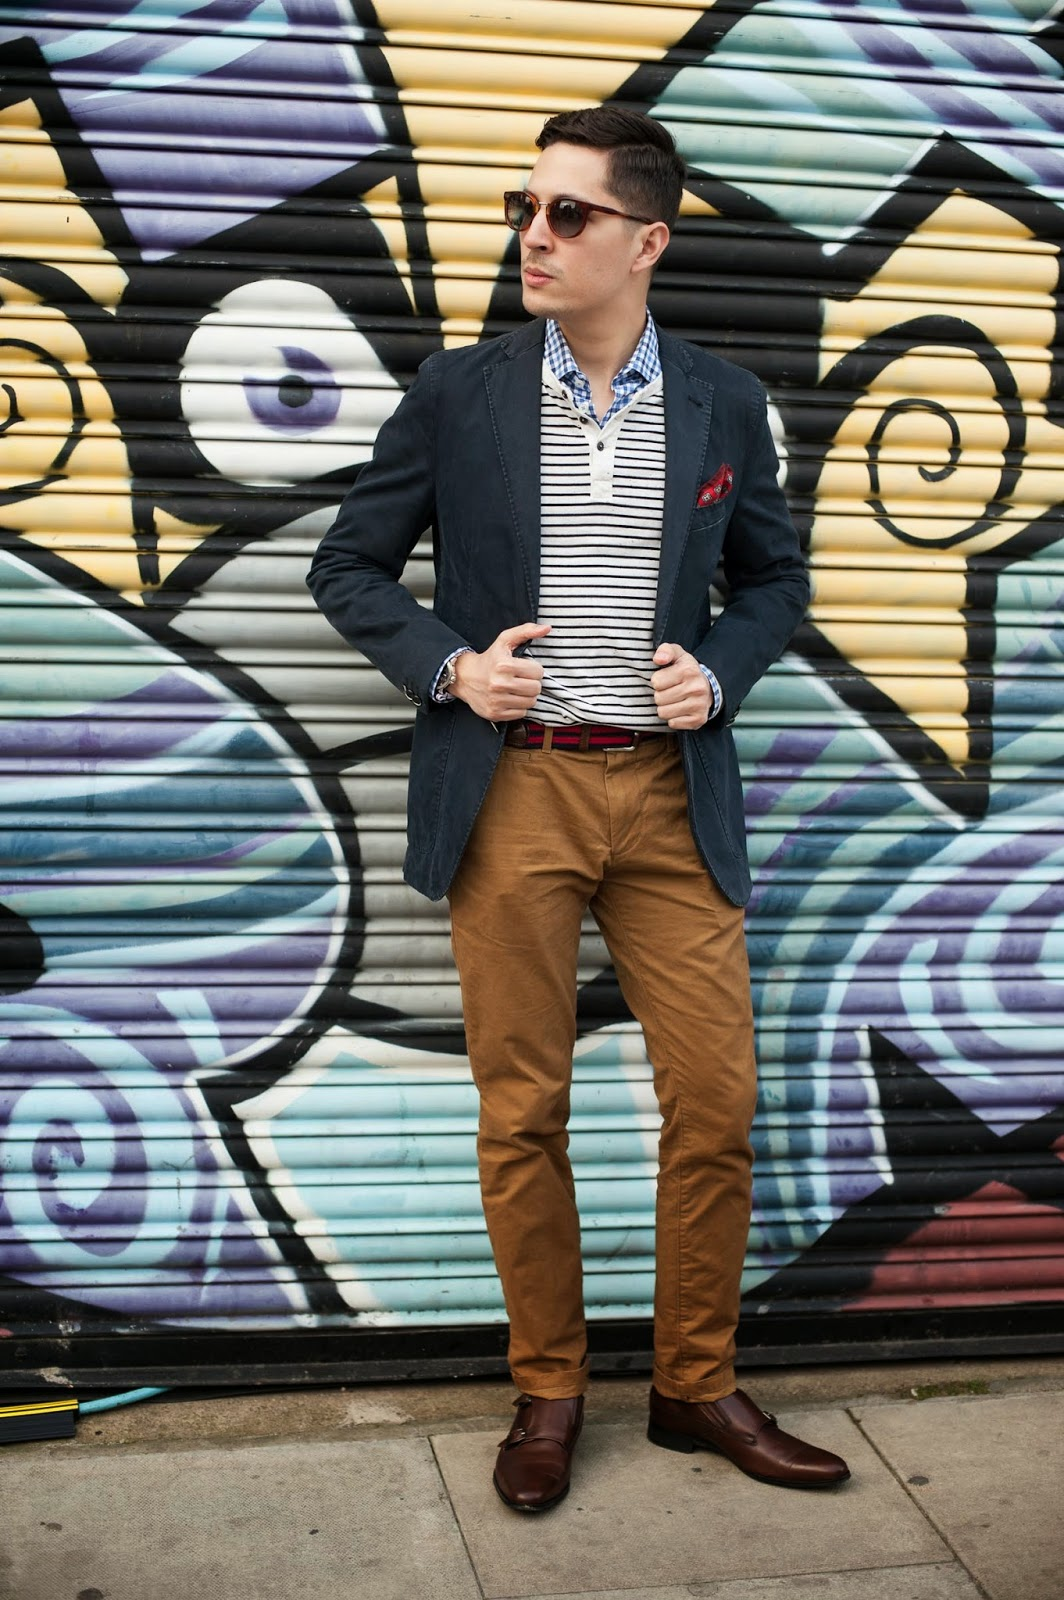 Herringbone Sydney Blazer, Herringbone Sydney Shirt, American Eagle Henley, Gap Chinos, Herringbone Sydney belt, Regal Japan Monk Straps, Herringbone Sydney Pocket Square, Oscar Wylee Sunglasses, Seiko Watch